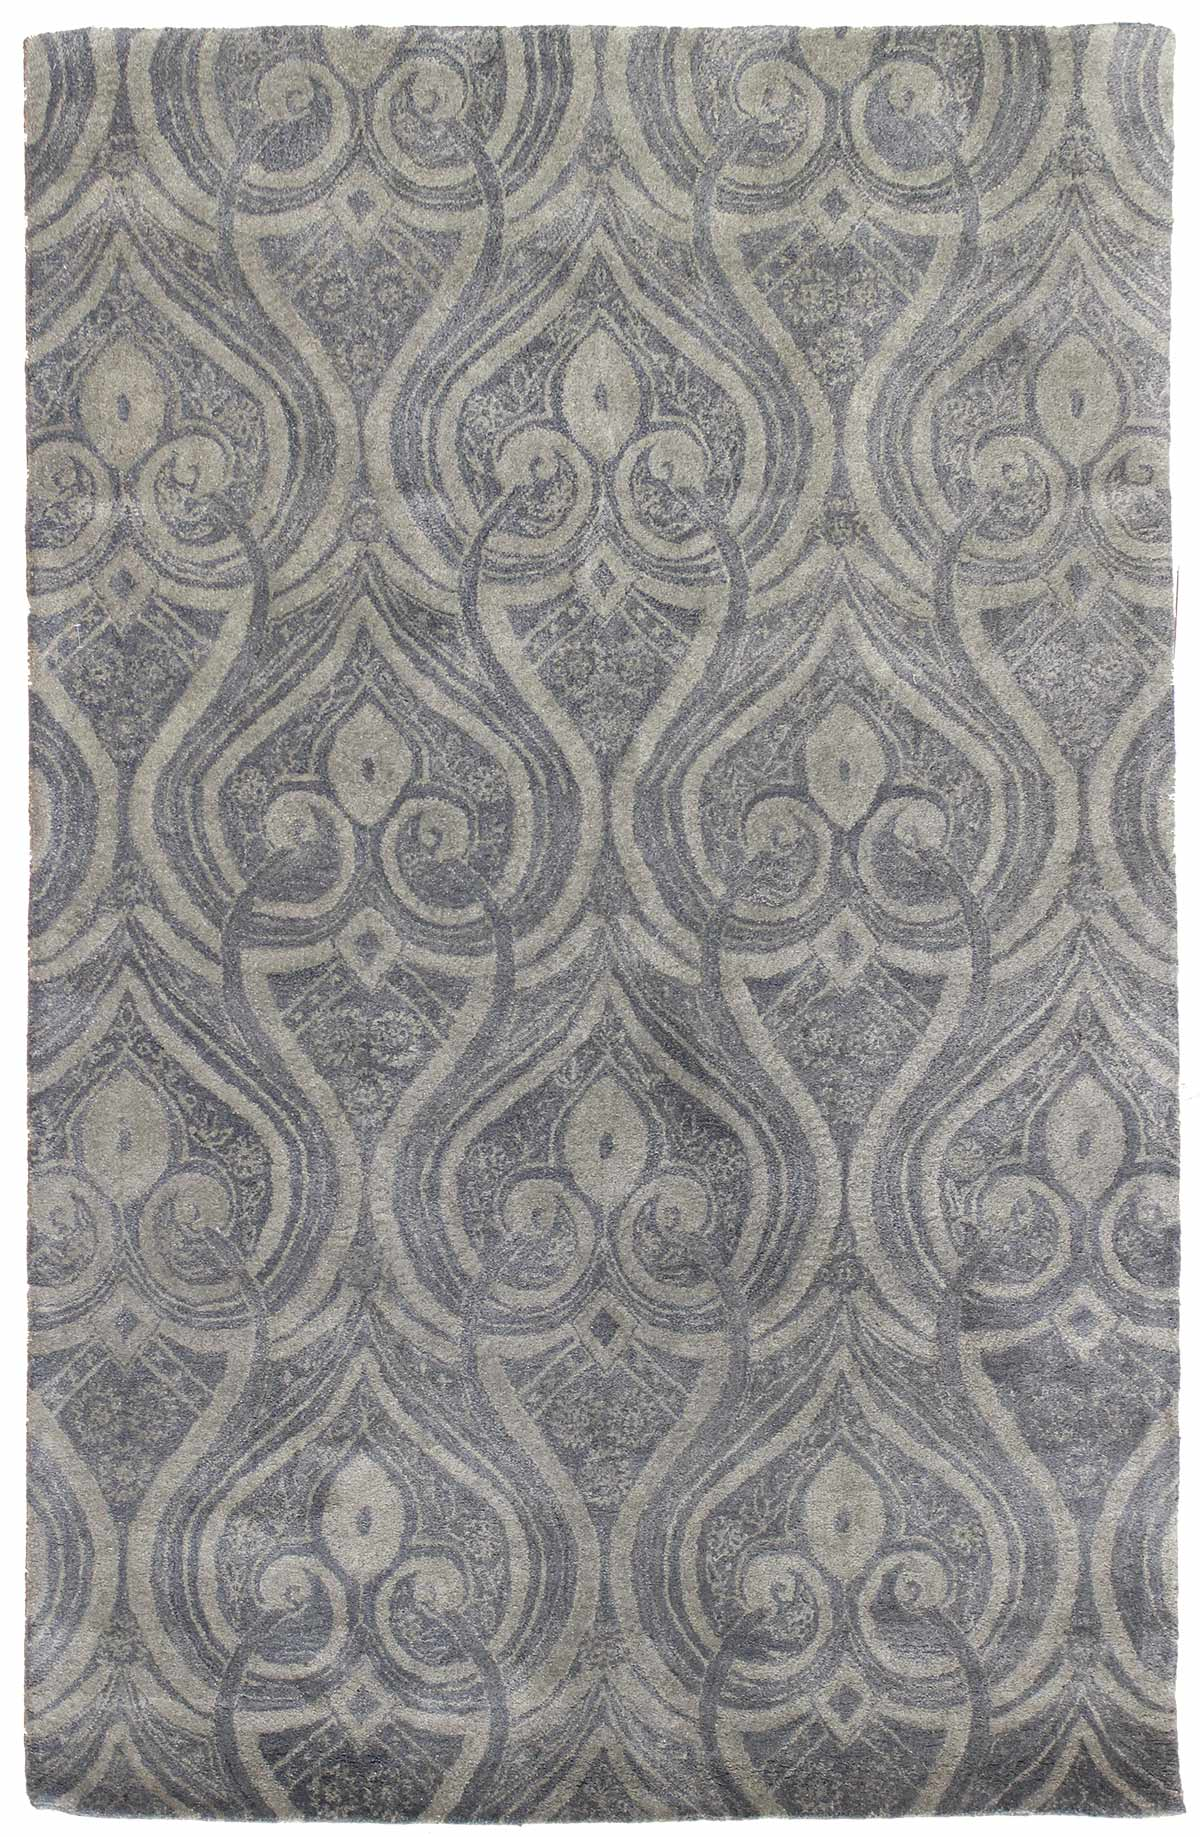 Deco Tufted Traditional Rug